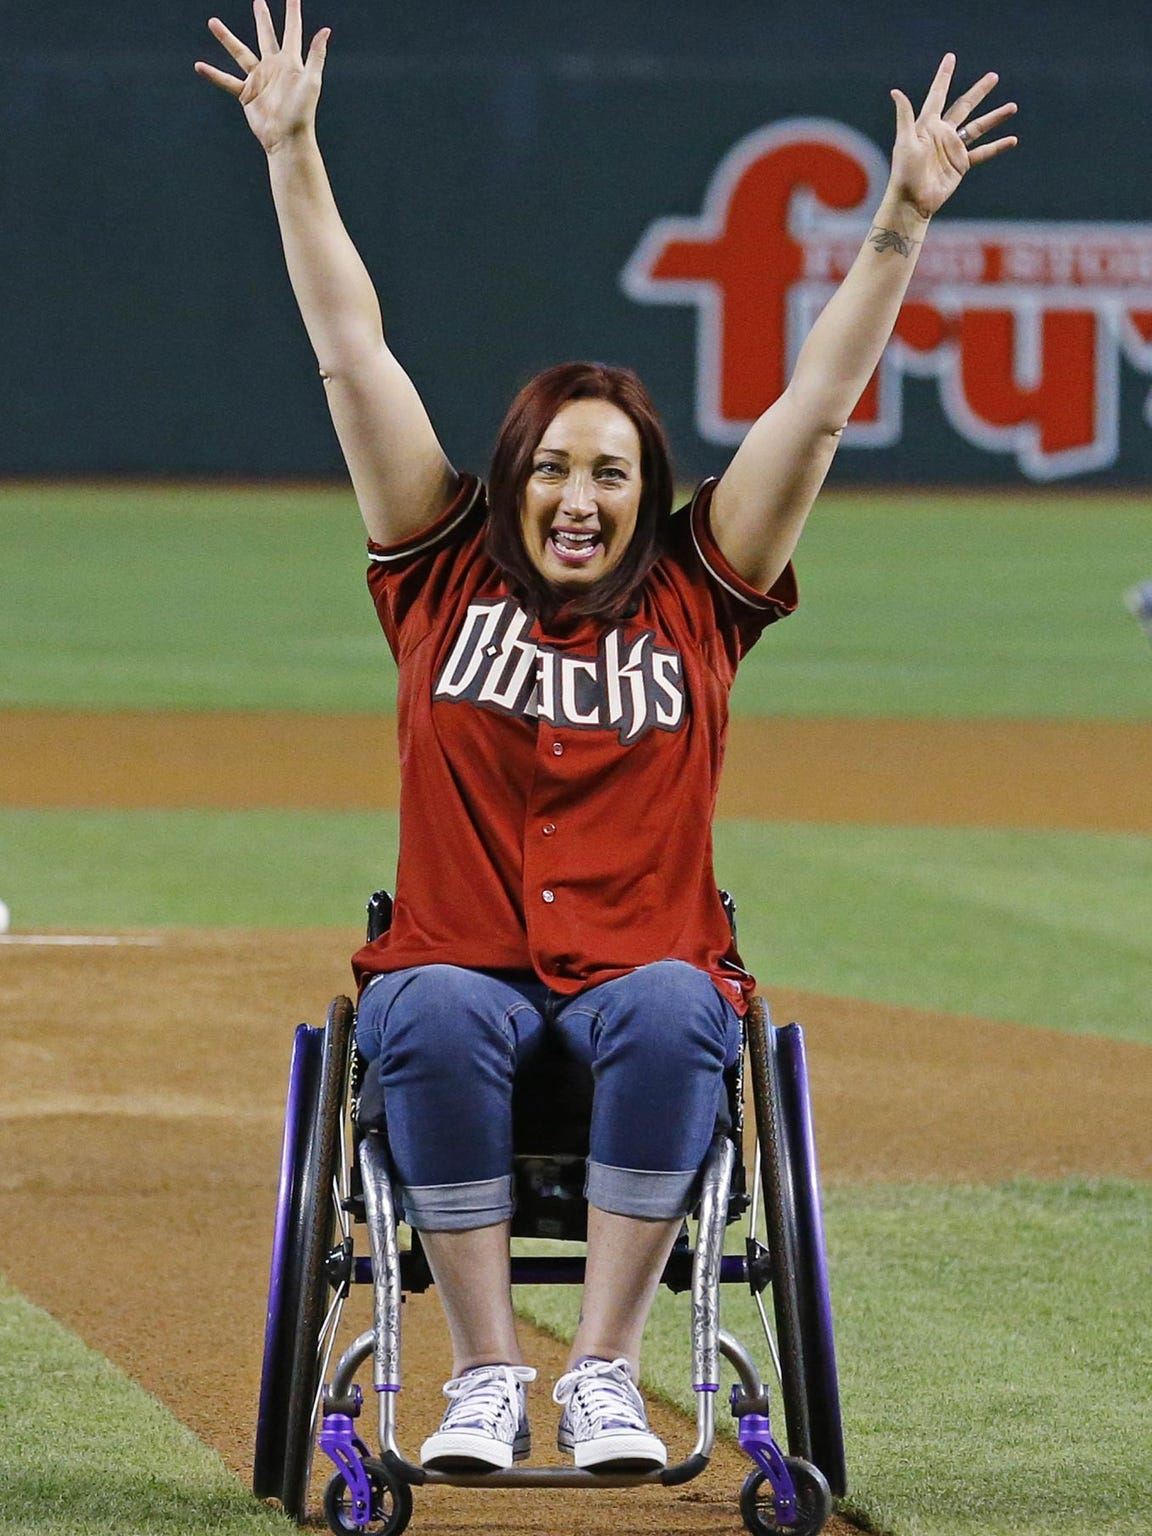 There's Amy: Van Dyken cheers after throwing out the